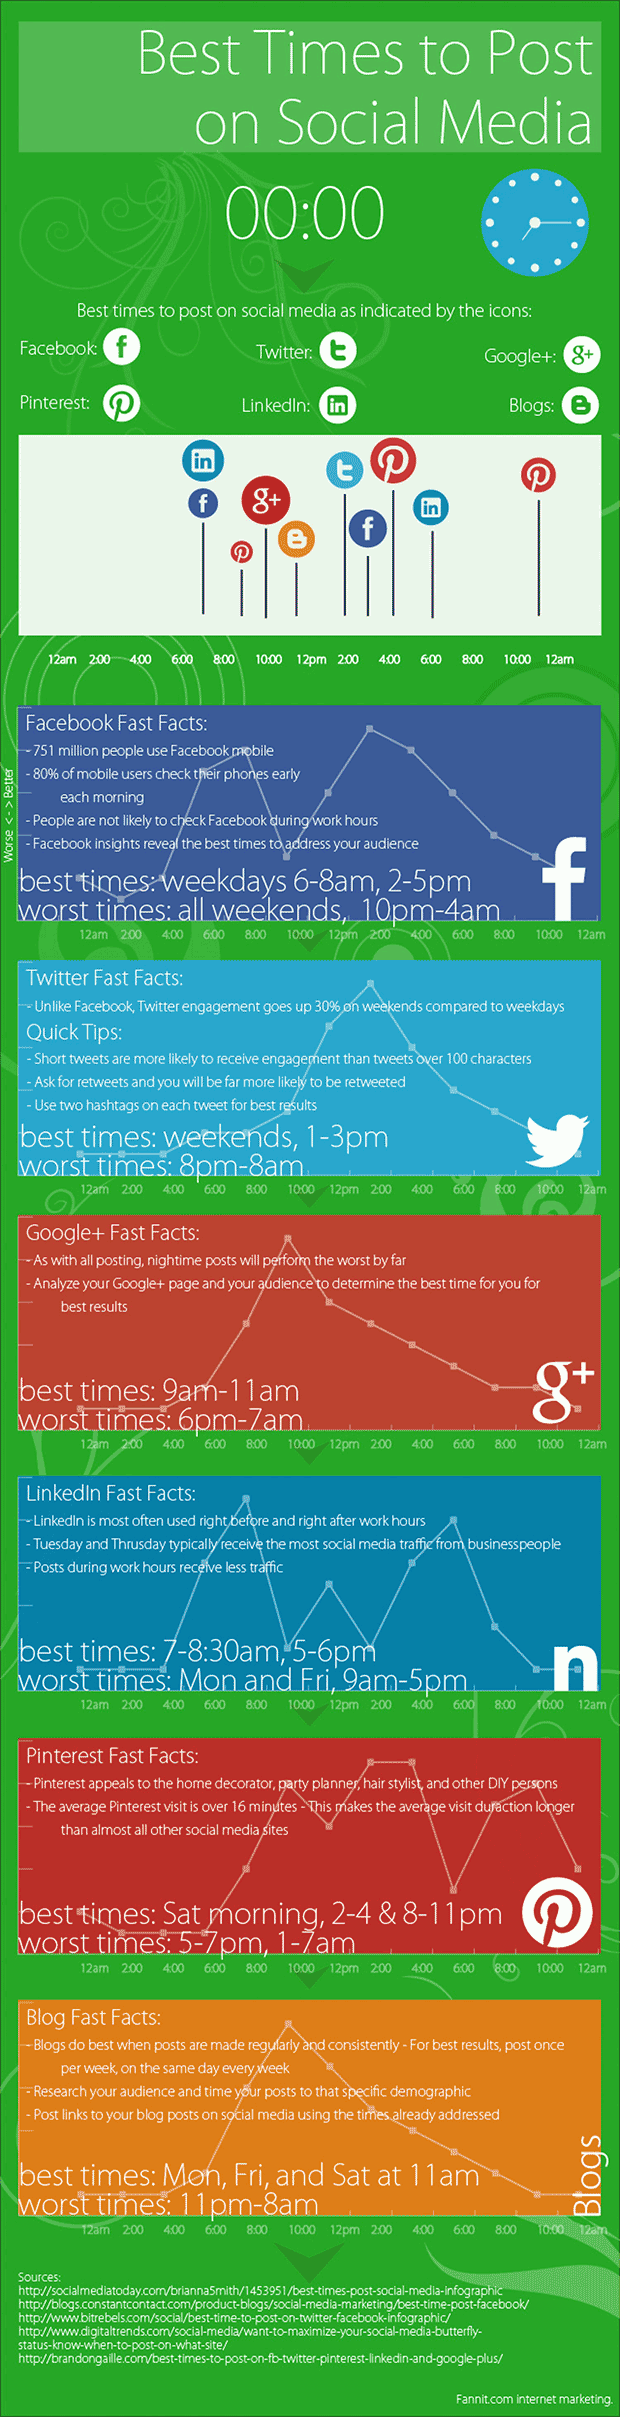 Best Time to Post on Facebook, Twitter, Pinterest and More